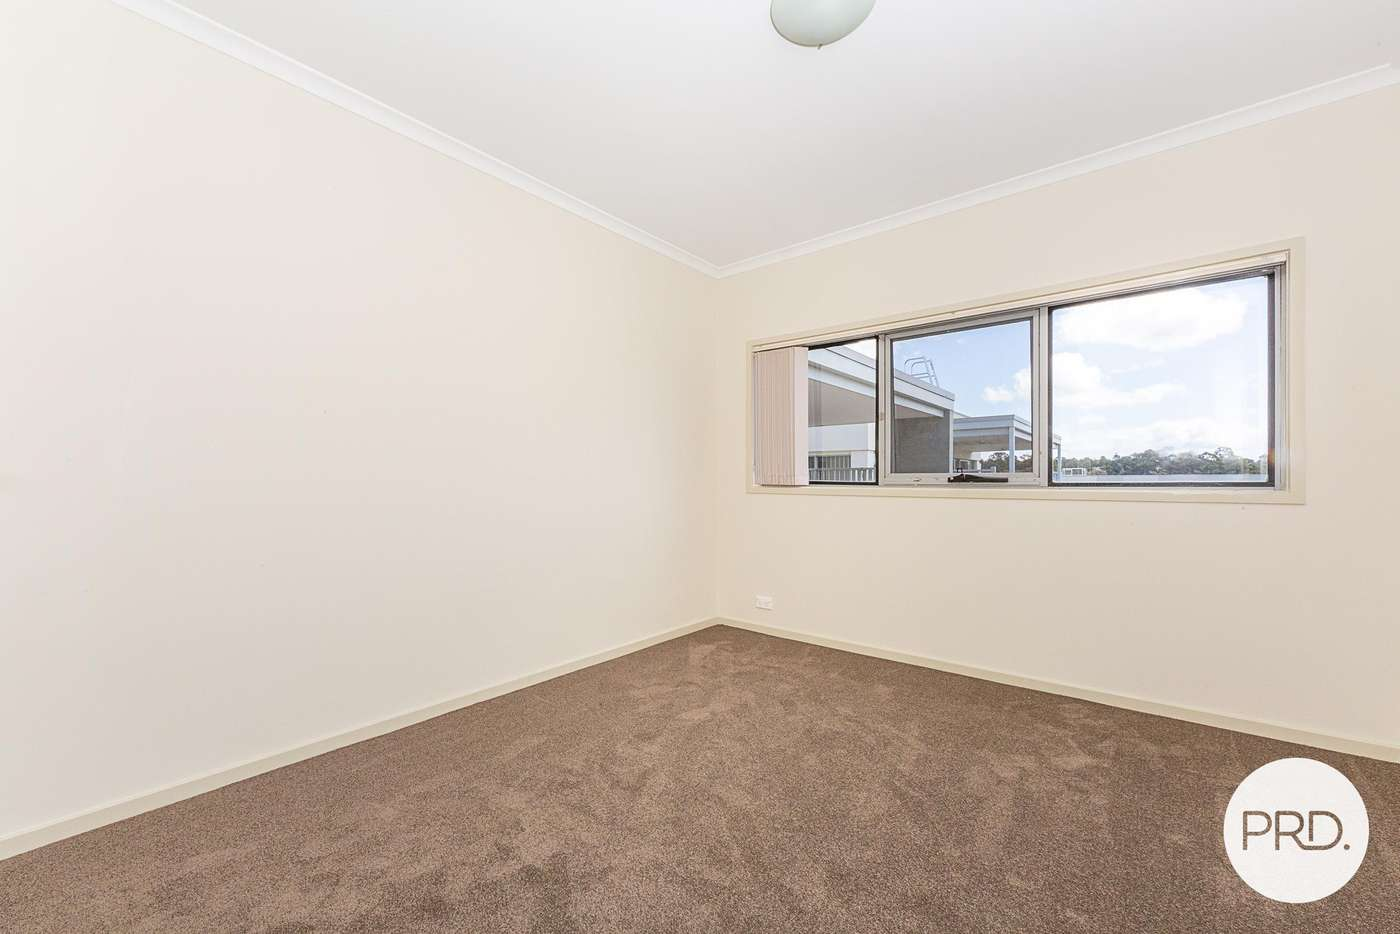 Seventh view of Homely apartment listing, 9/2 Eardley Street, Bruce ACT 2617